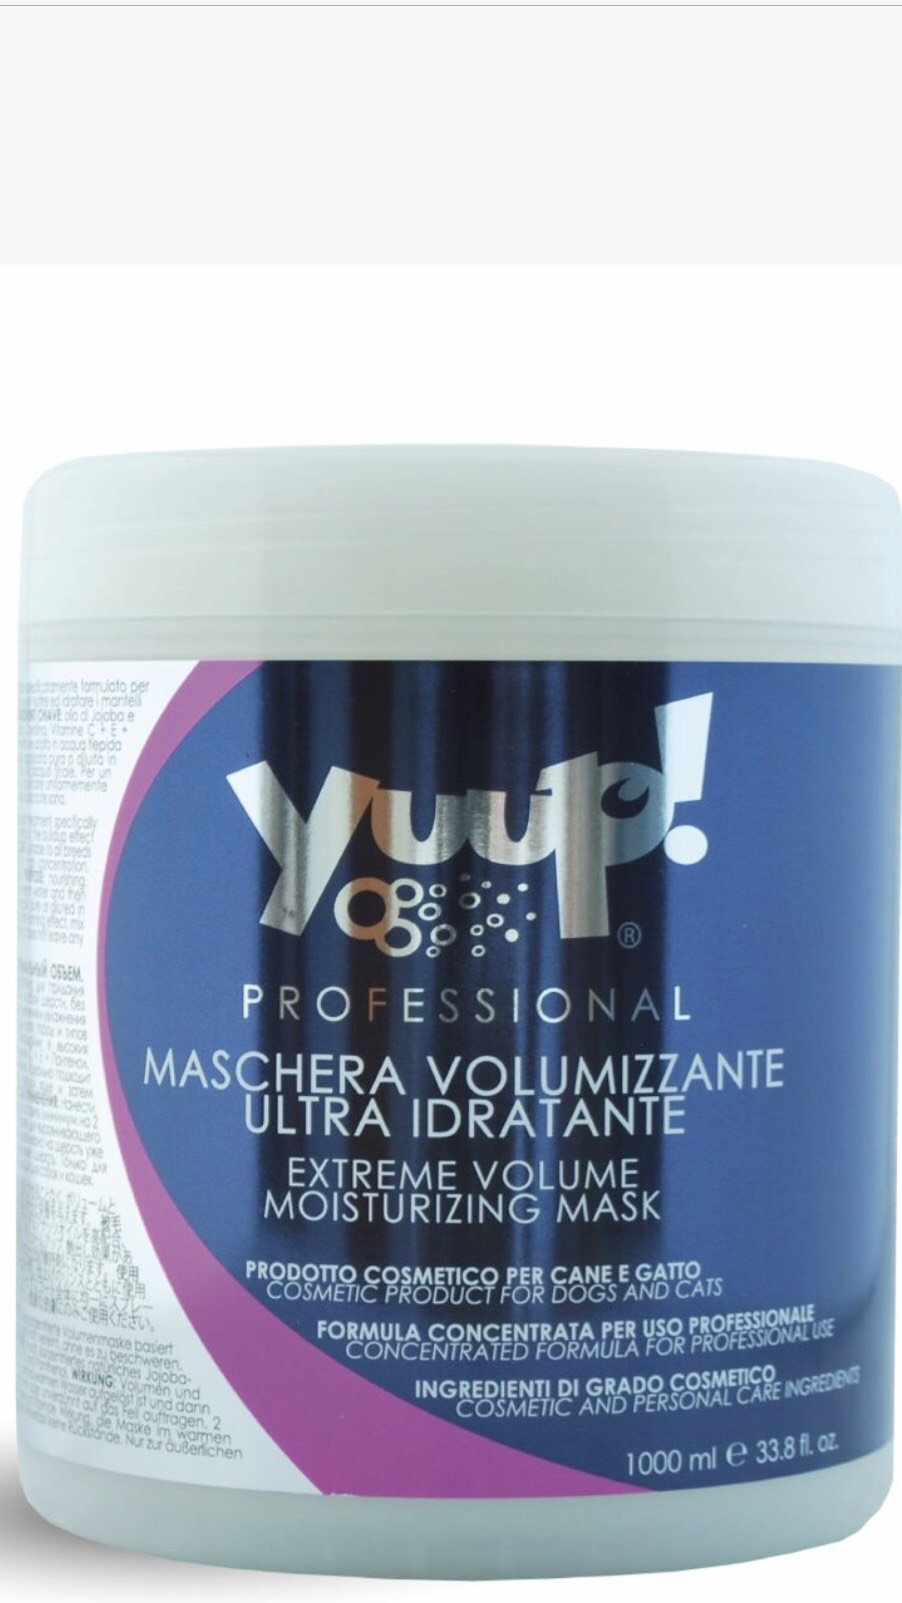 Extreme Volume and Moisturising Mask